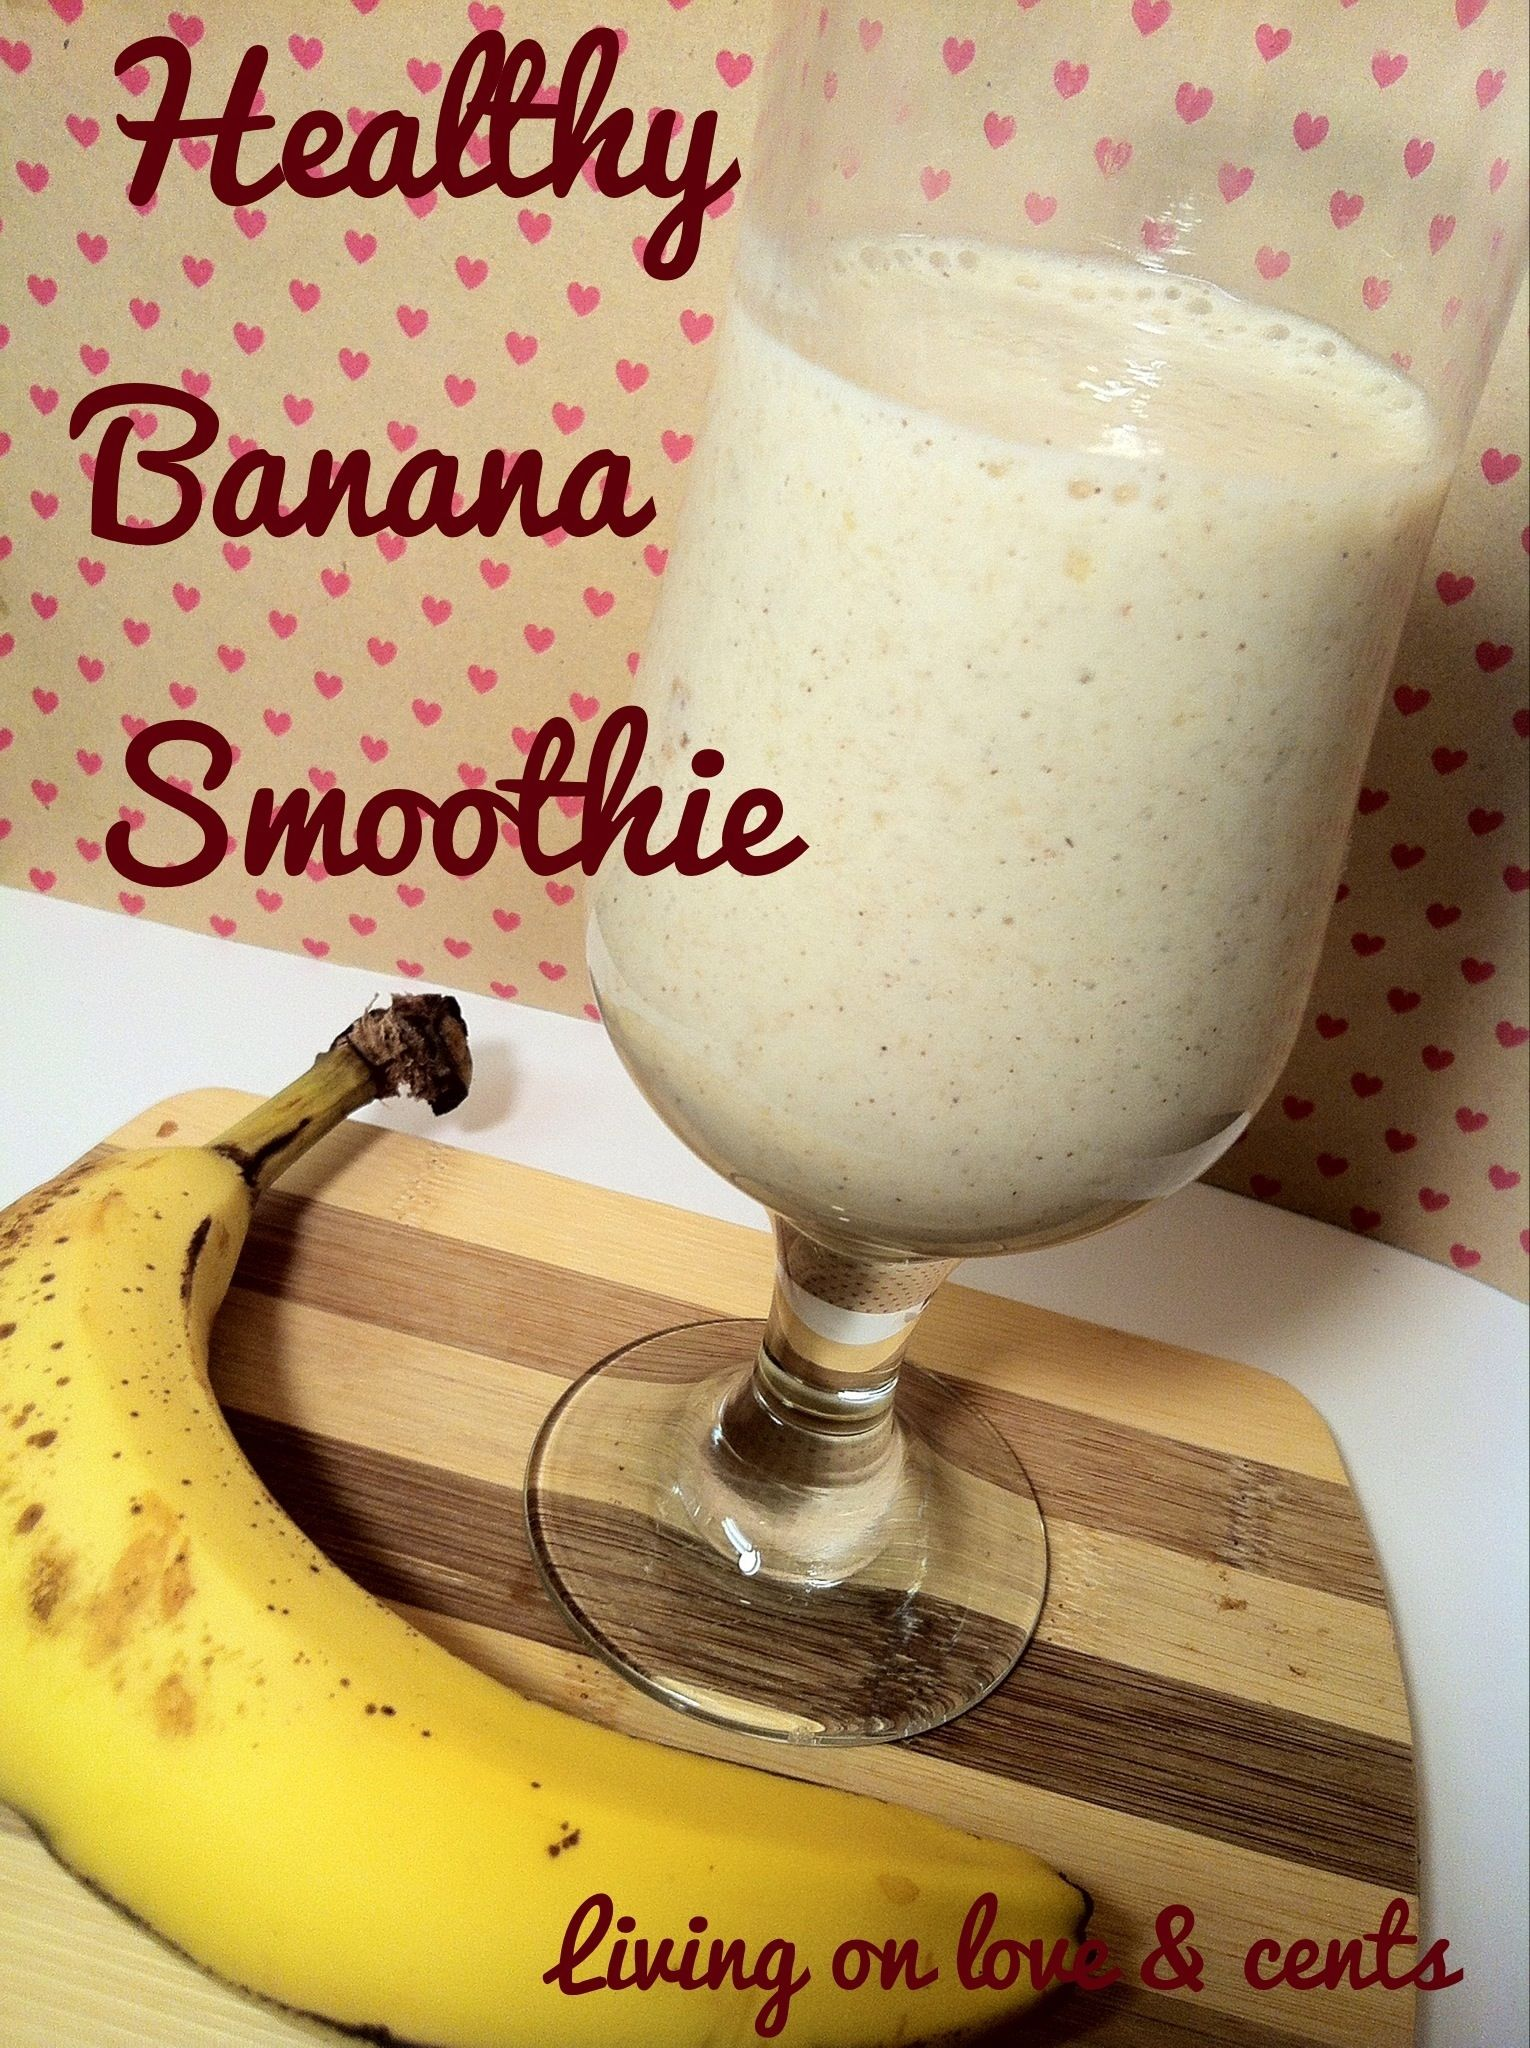 Healthy & Sweet Banana Smoothie Recipe ngredients: 1 banana 2 teaspoons honey 1 teaspoon ground cinnamon 1/2 cup vanilla soy milk ( or your milk of choice) Add all to the blender. Blend until smooth. Enjoy!